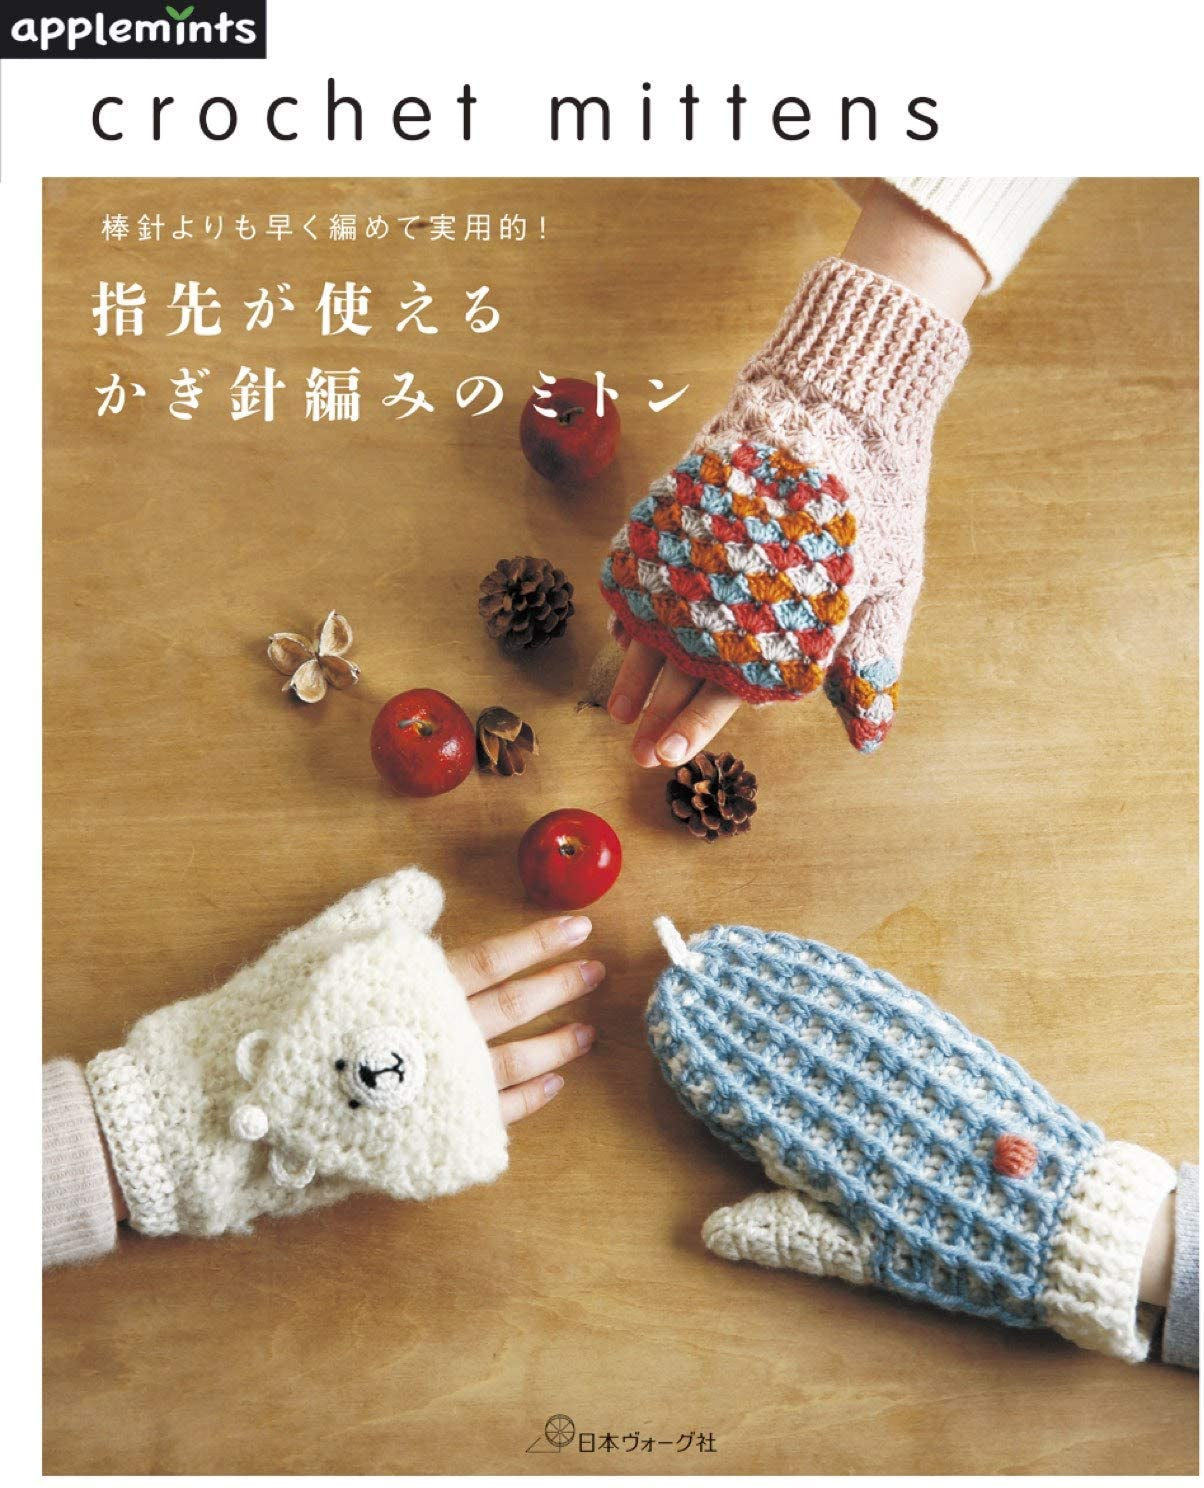 Practical knitting faster than stick needles! Crochet mittens with fingertips